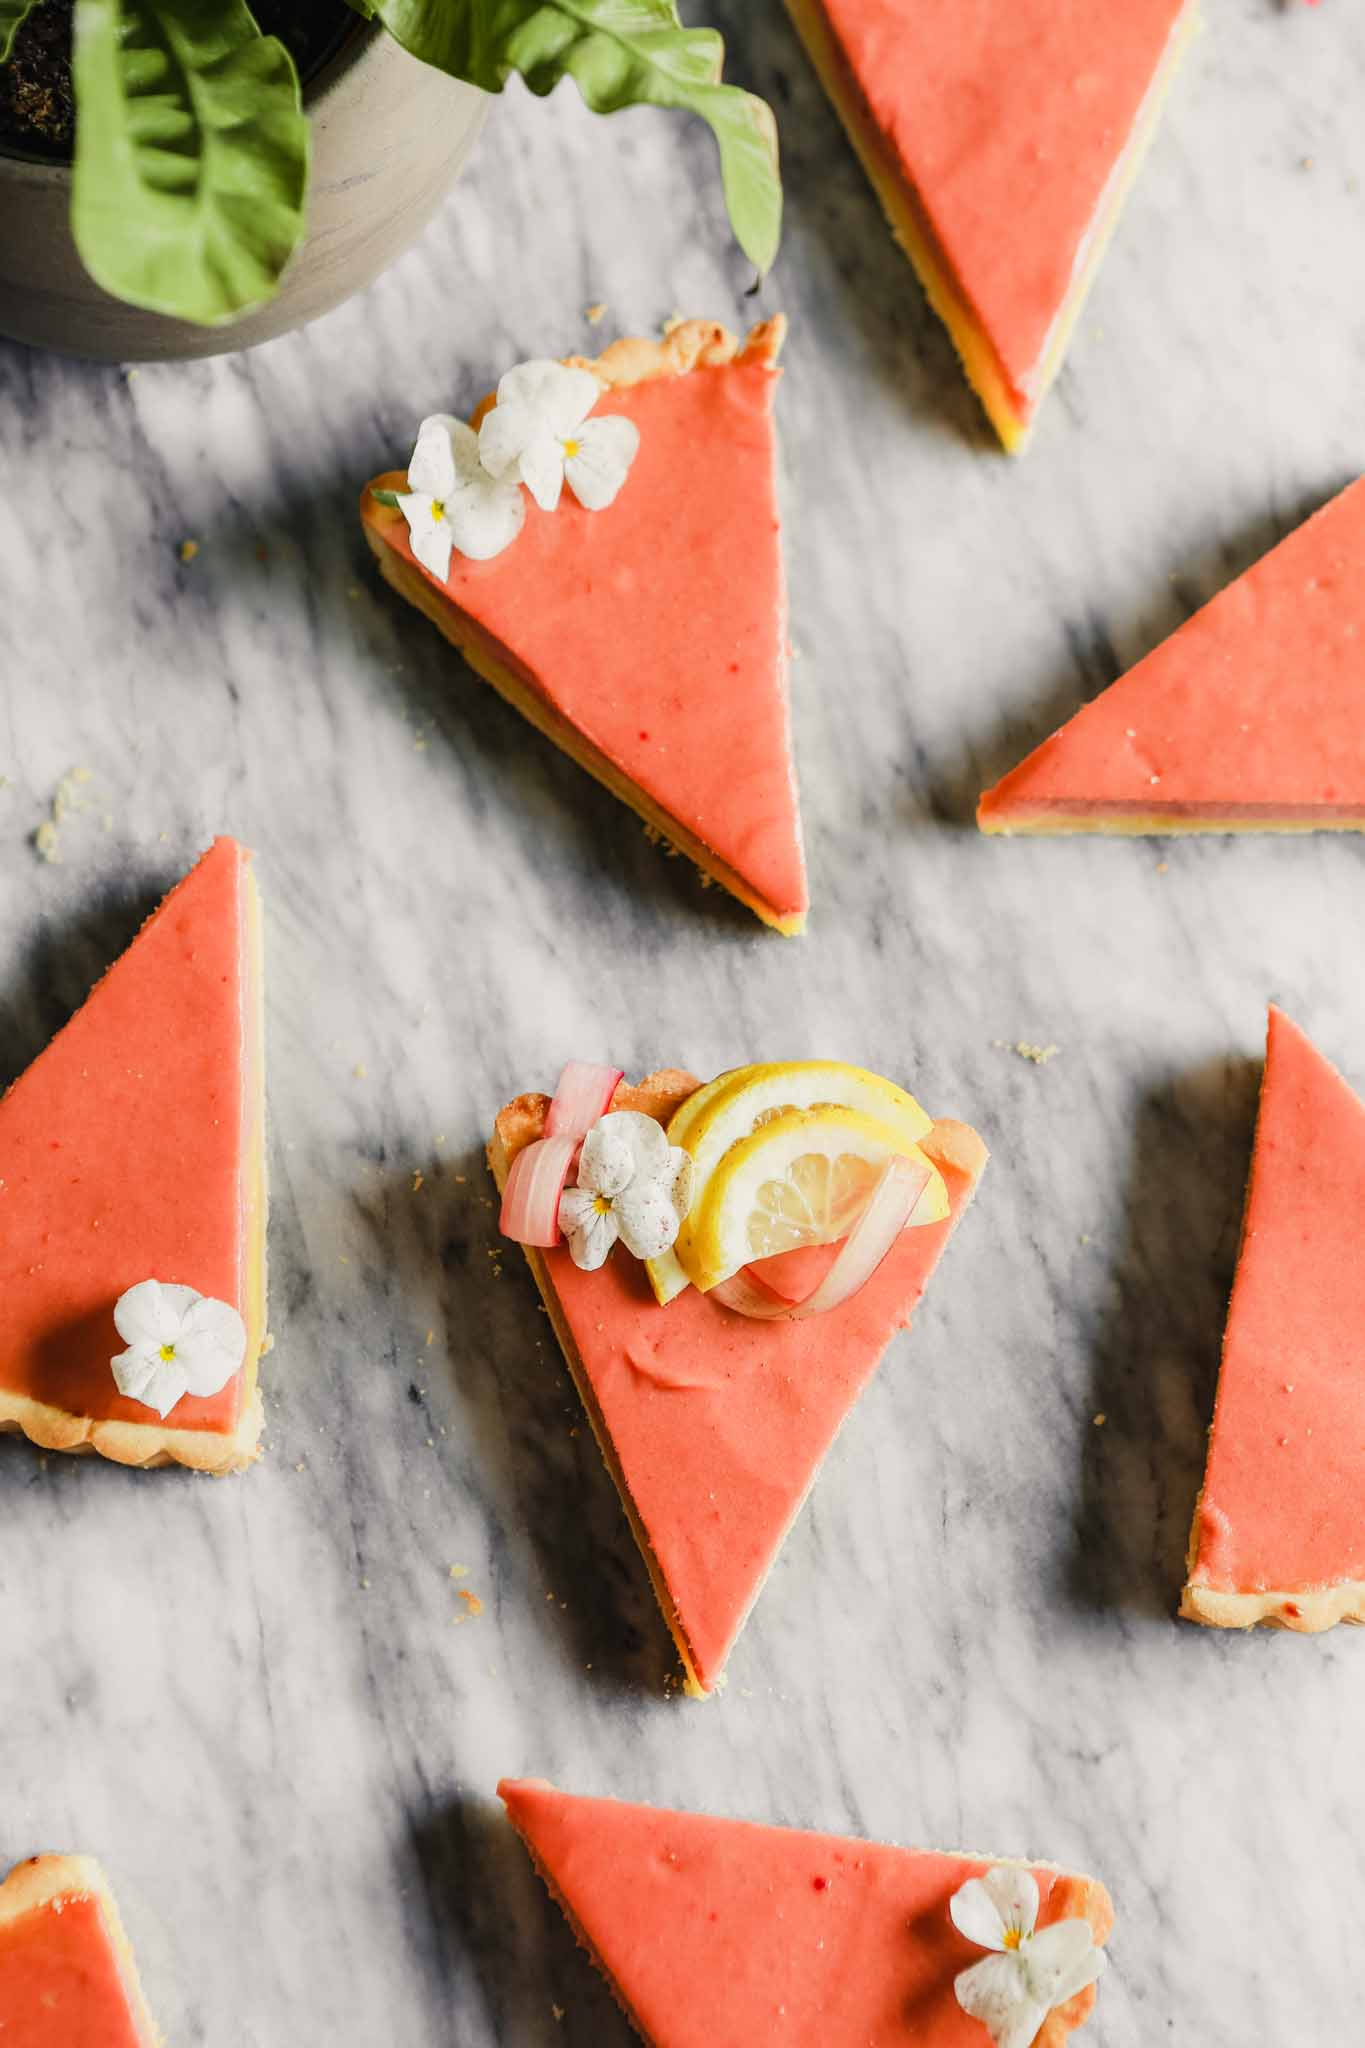 Overhead photograph of wedges of layered rhubarb tart set on a marble table.